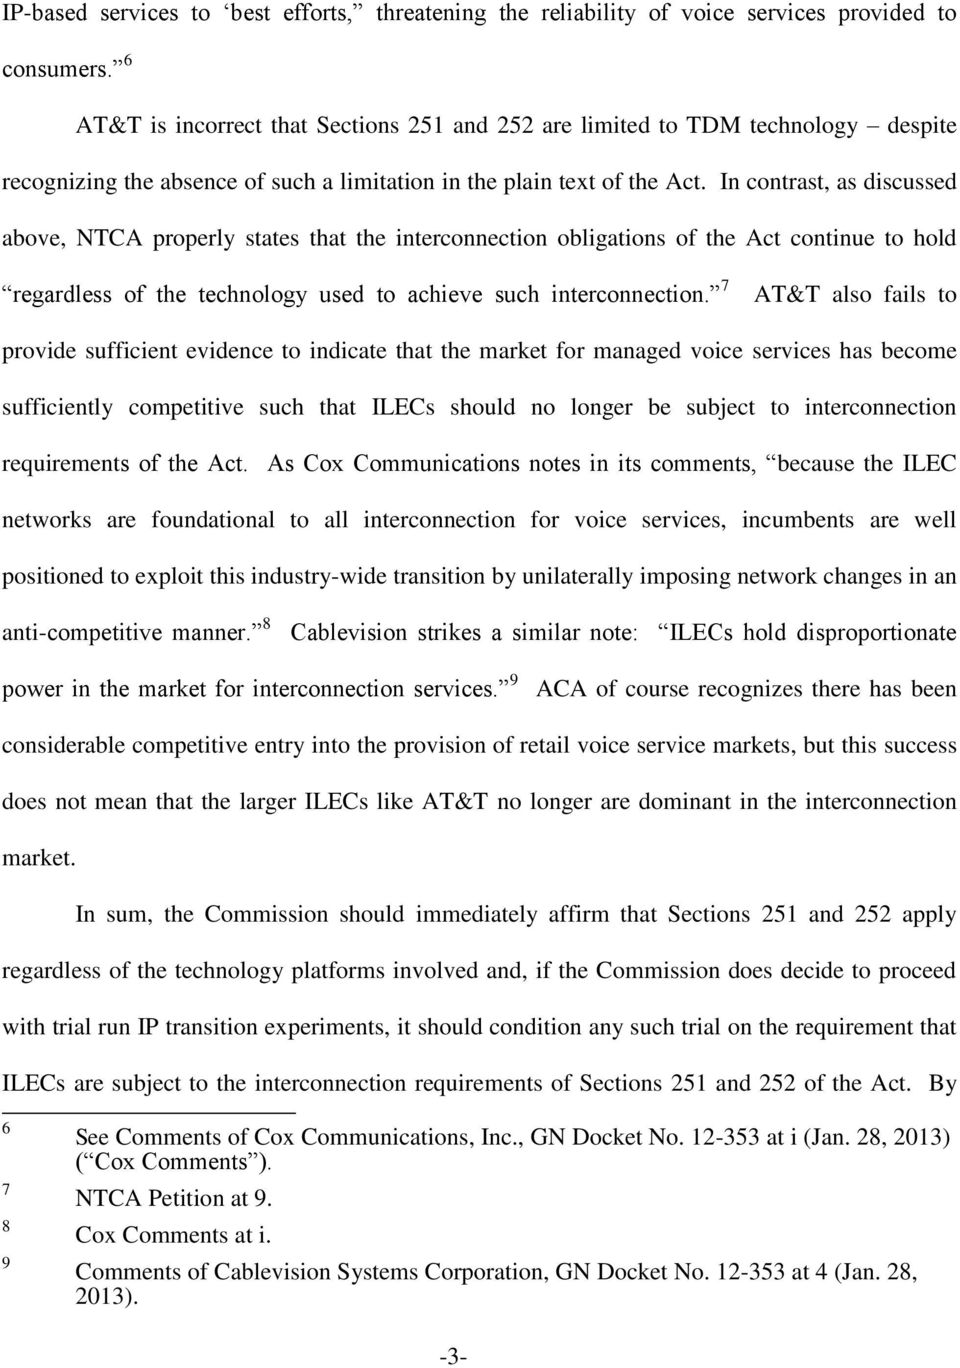 In contrast, as discussed above, NTCA properly states that the interconnection obligations of the Act continue to hold regardless of the technology used to achieve such interconnection.